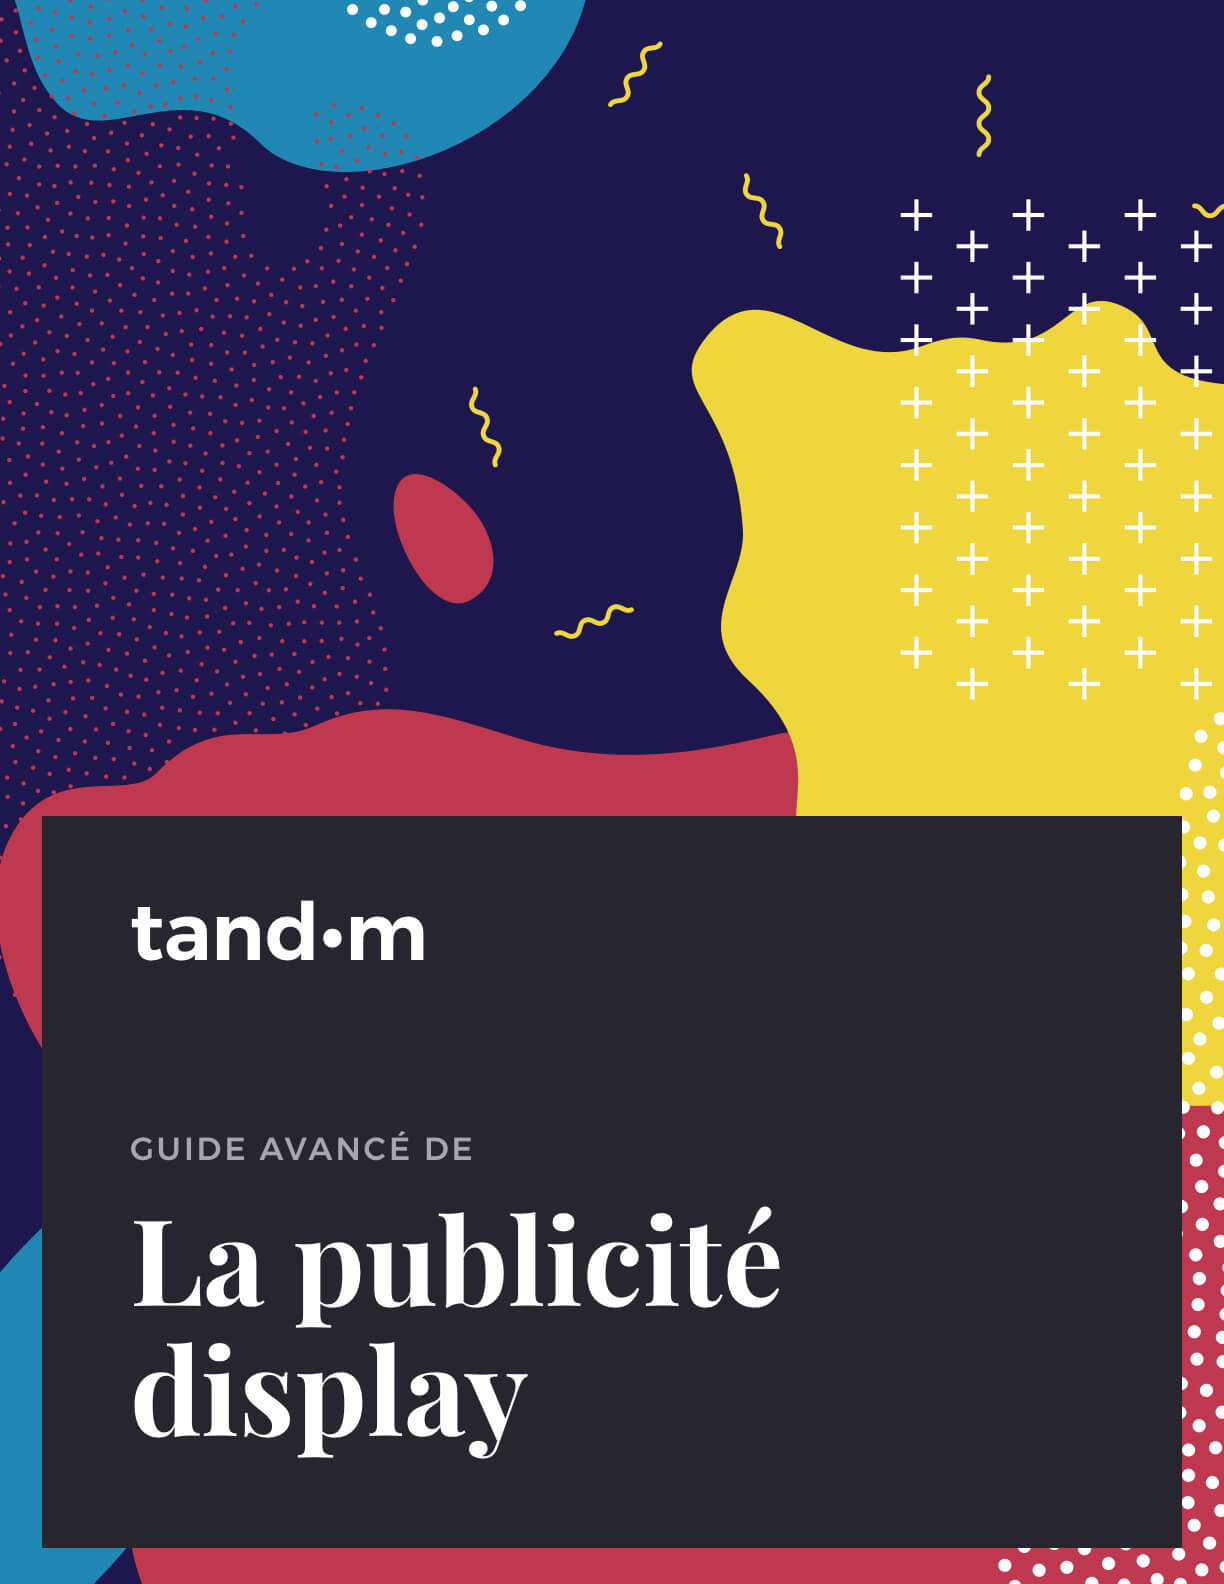 Guide avancé de la publicité display